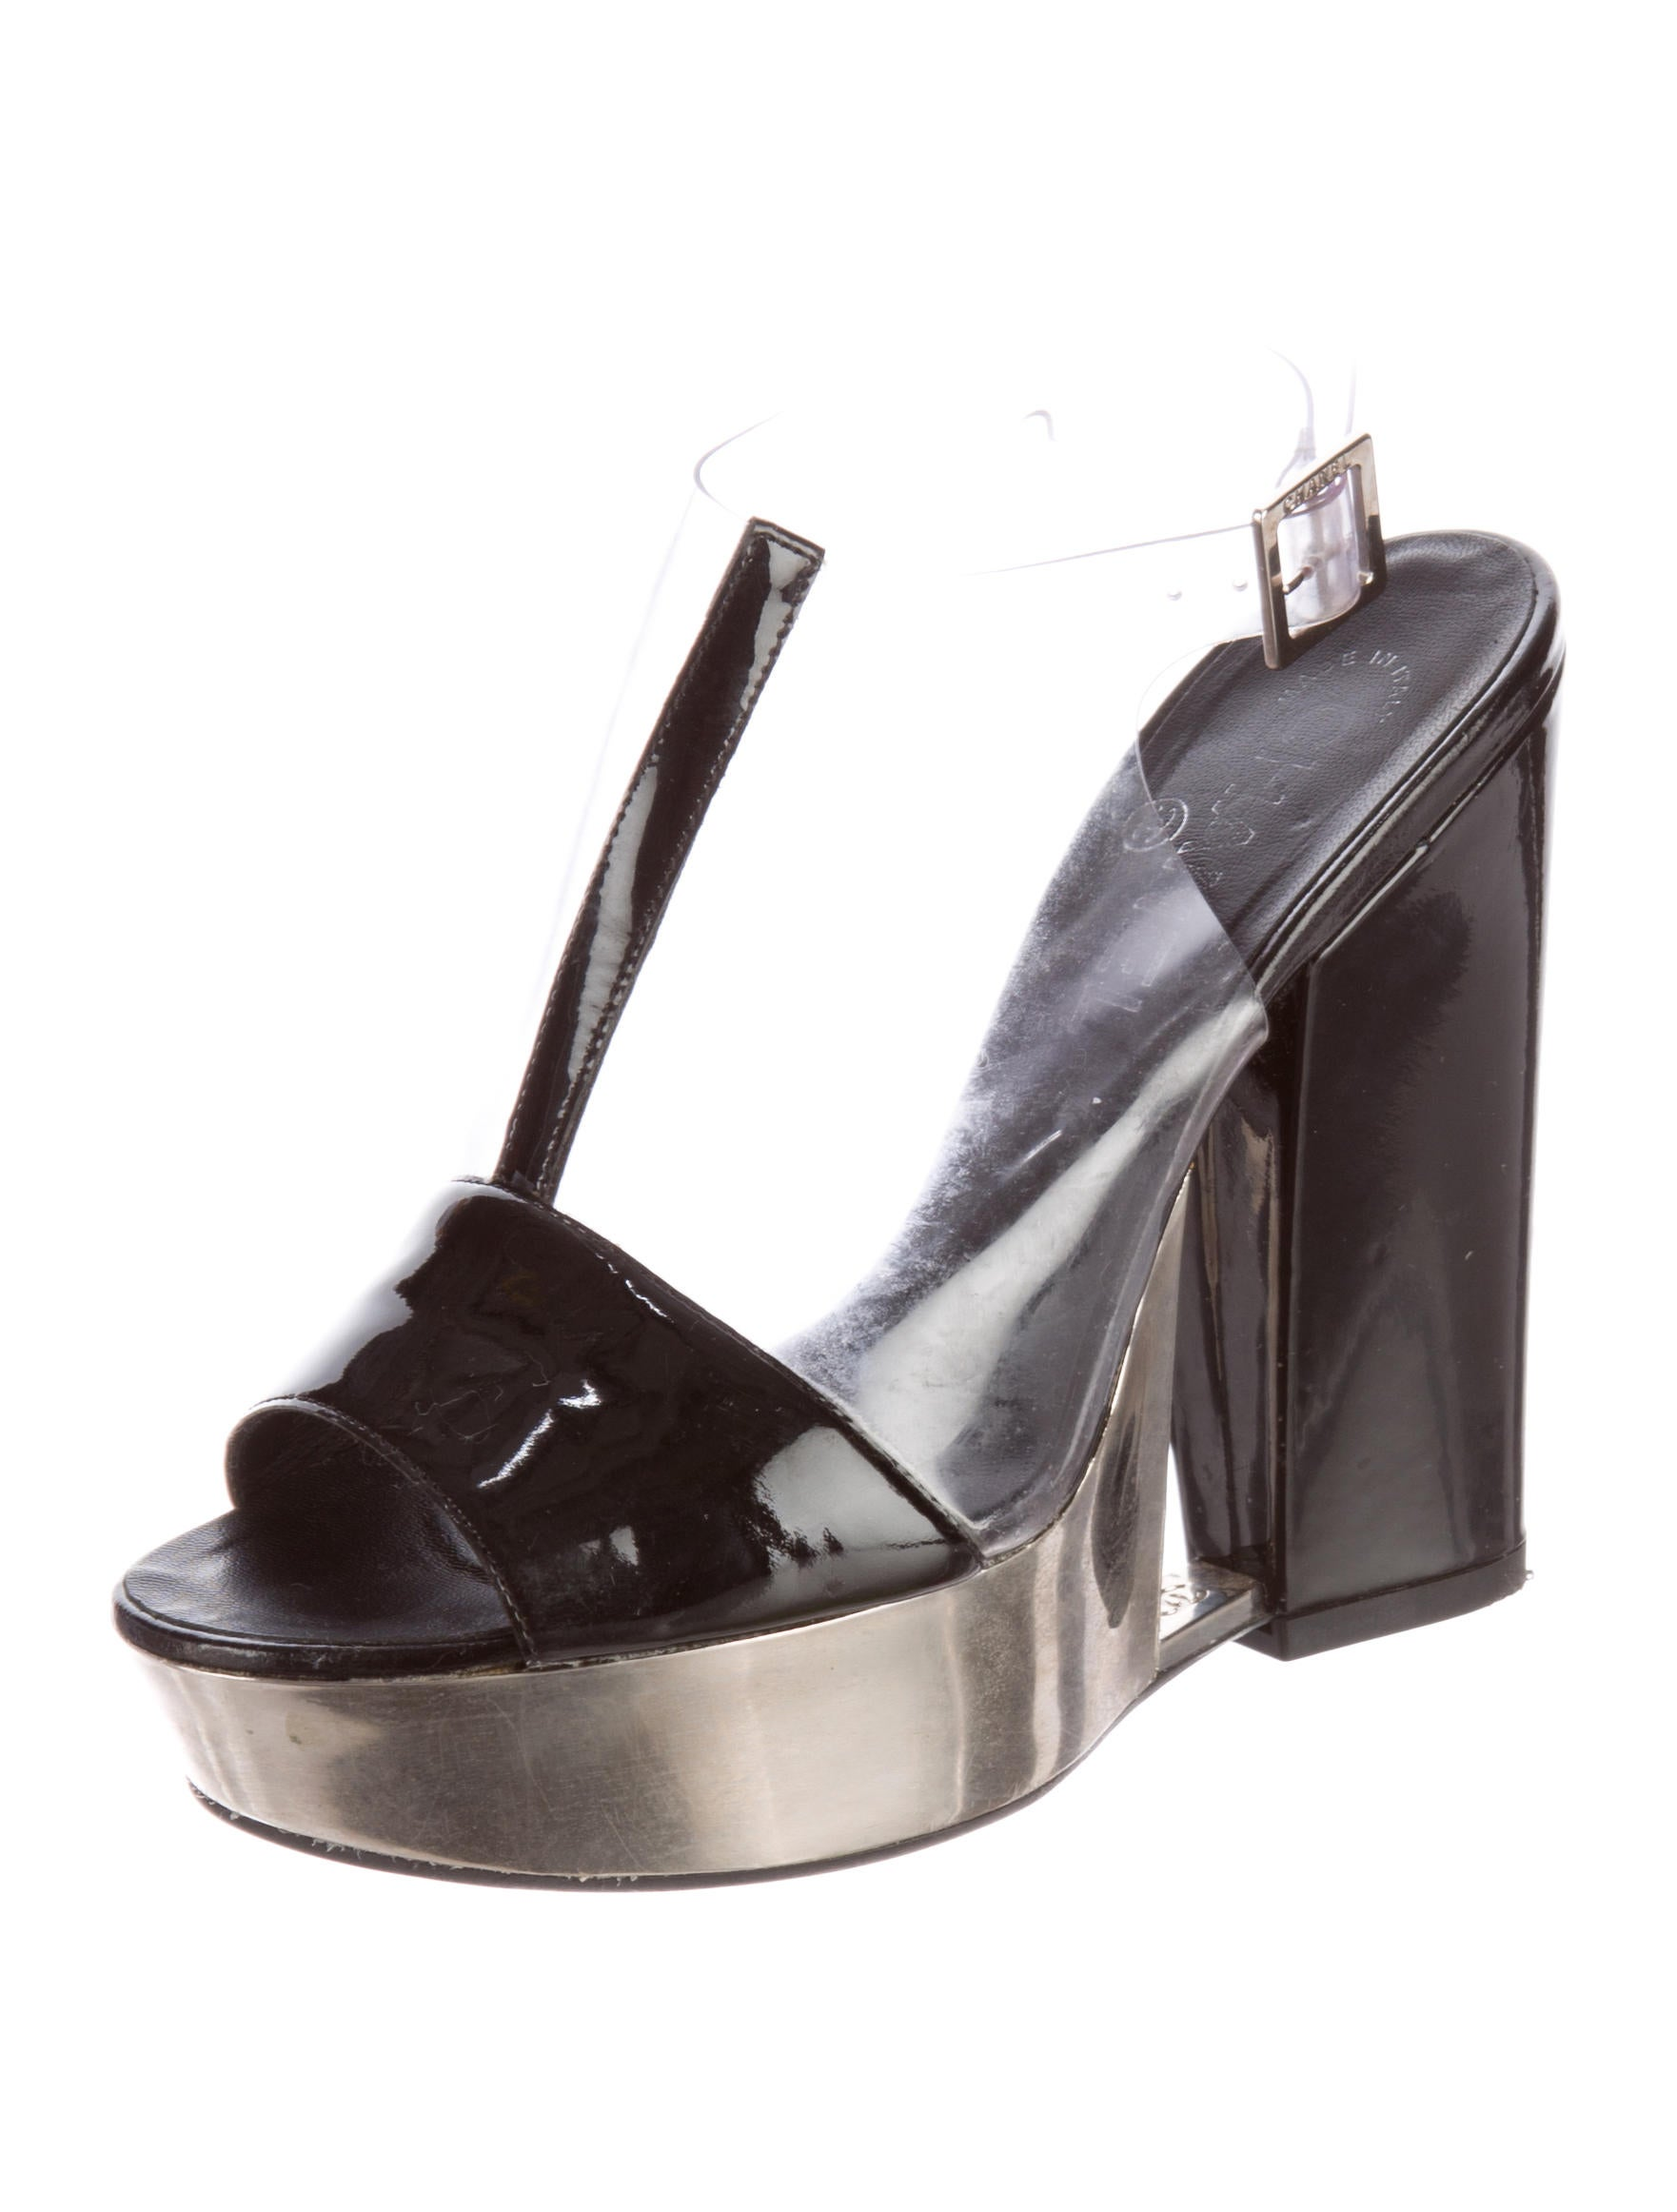 chanel pvc platform sandals shoes cha121427 the realreal